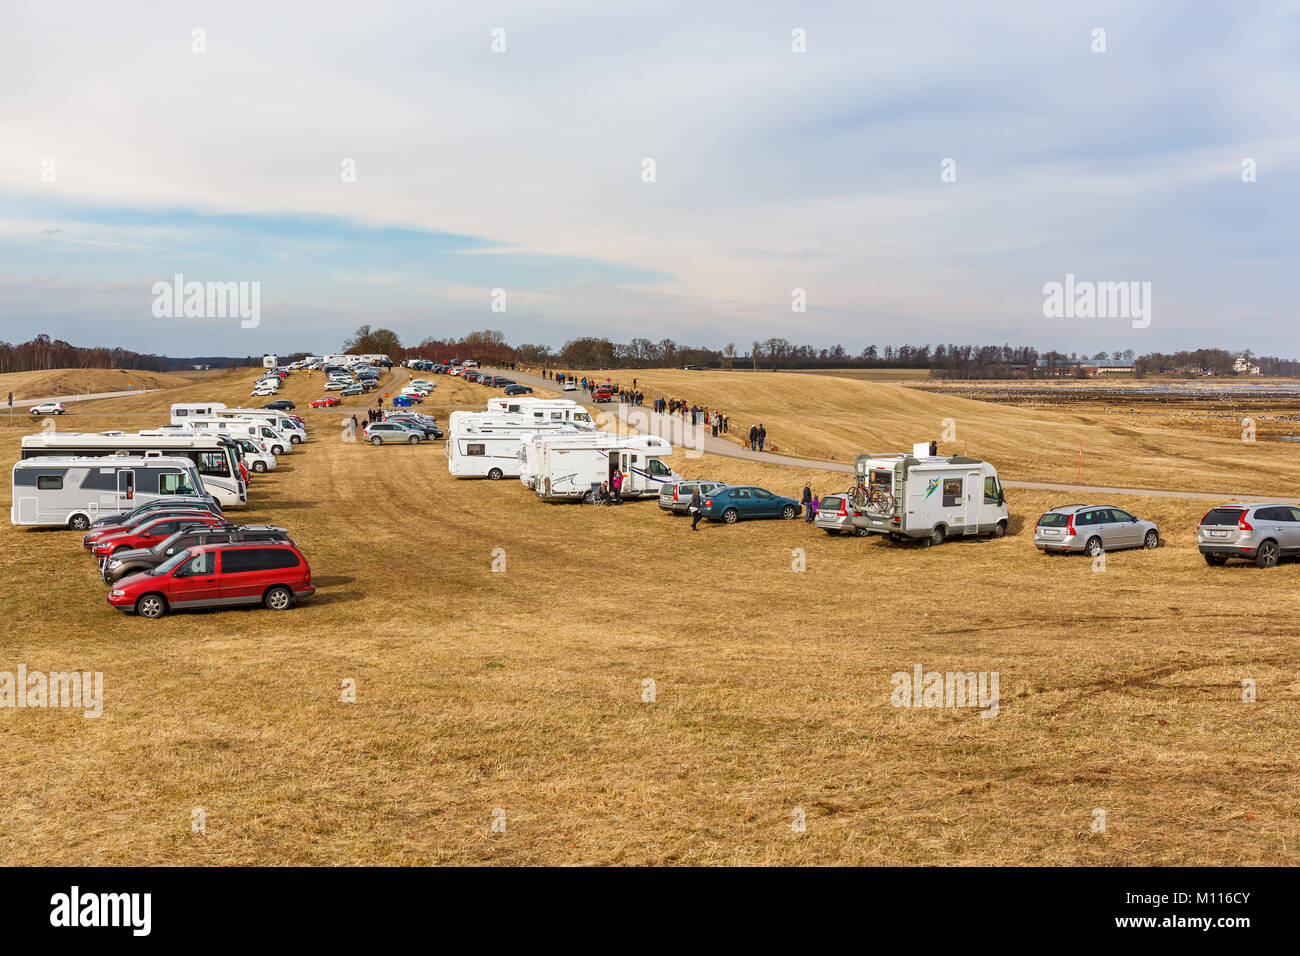 Car parking on a field for birdwatchers at Lake Hornborgation in Sweden - Stock Image